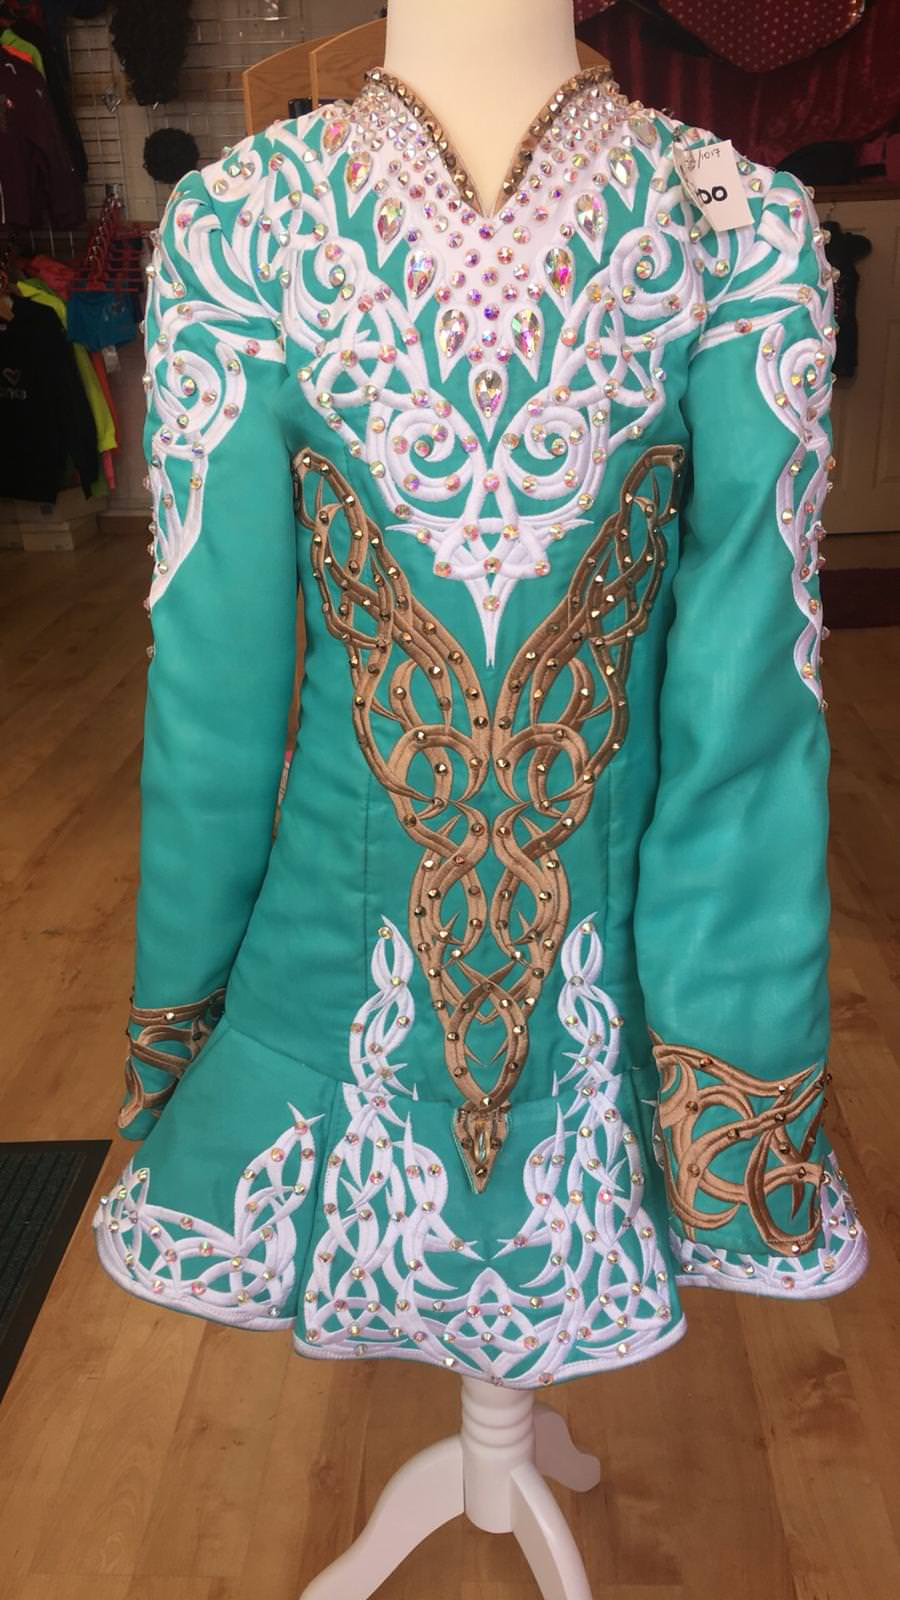 Green, White and Gold Dress